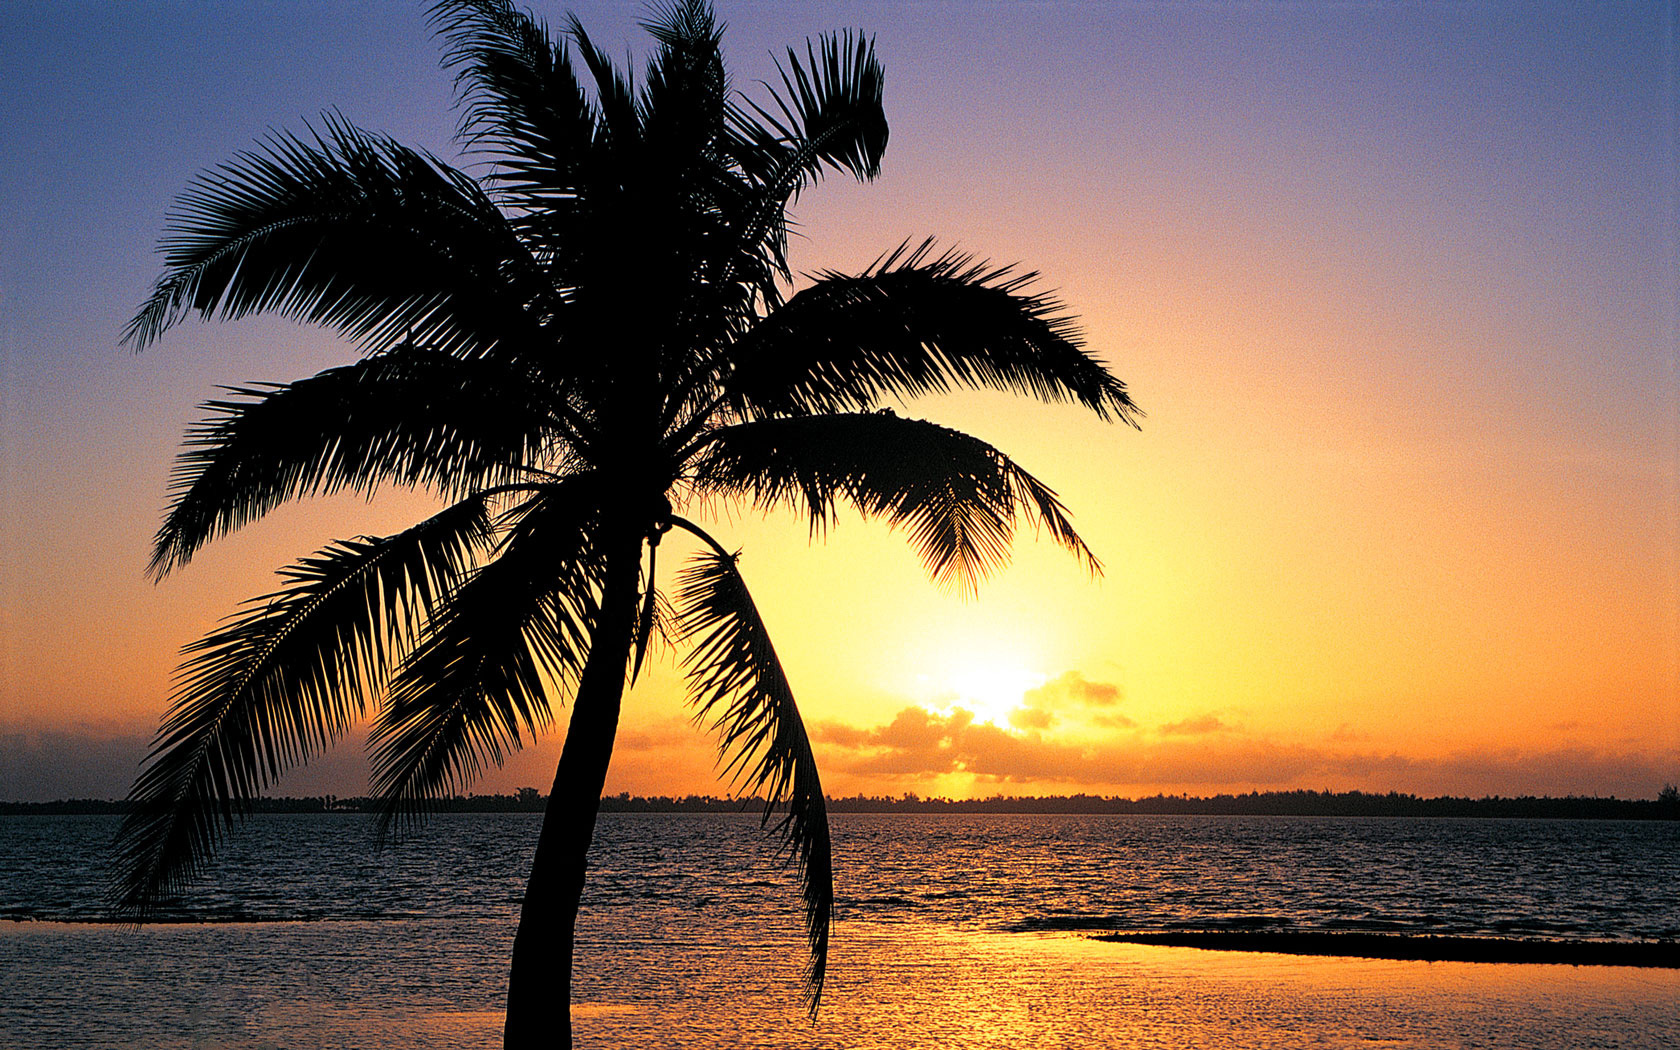 beach sunset with palm trees. download beach sunset with palm trees e